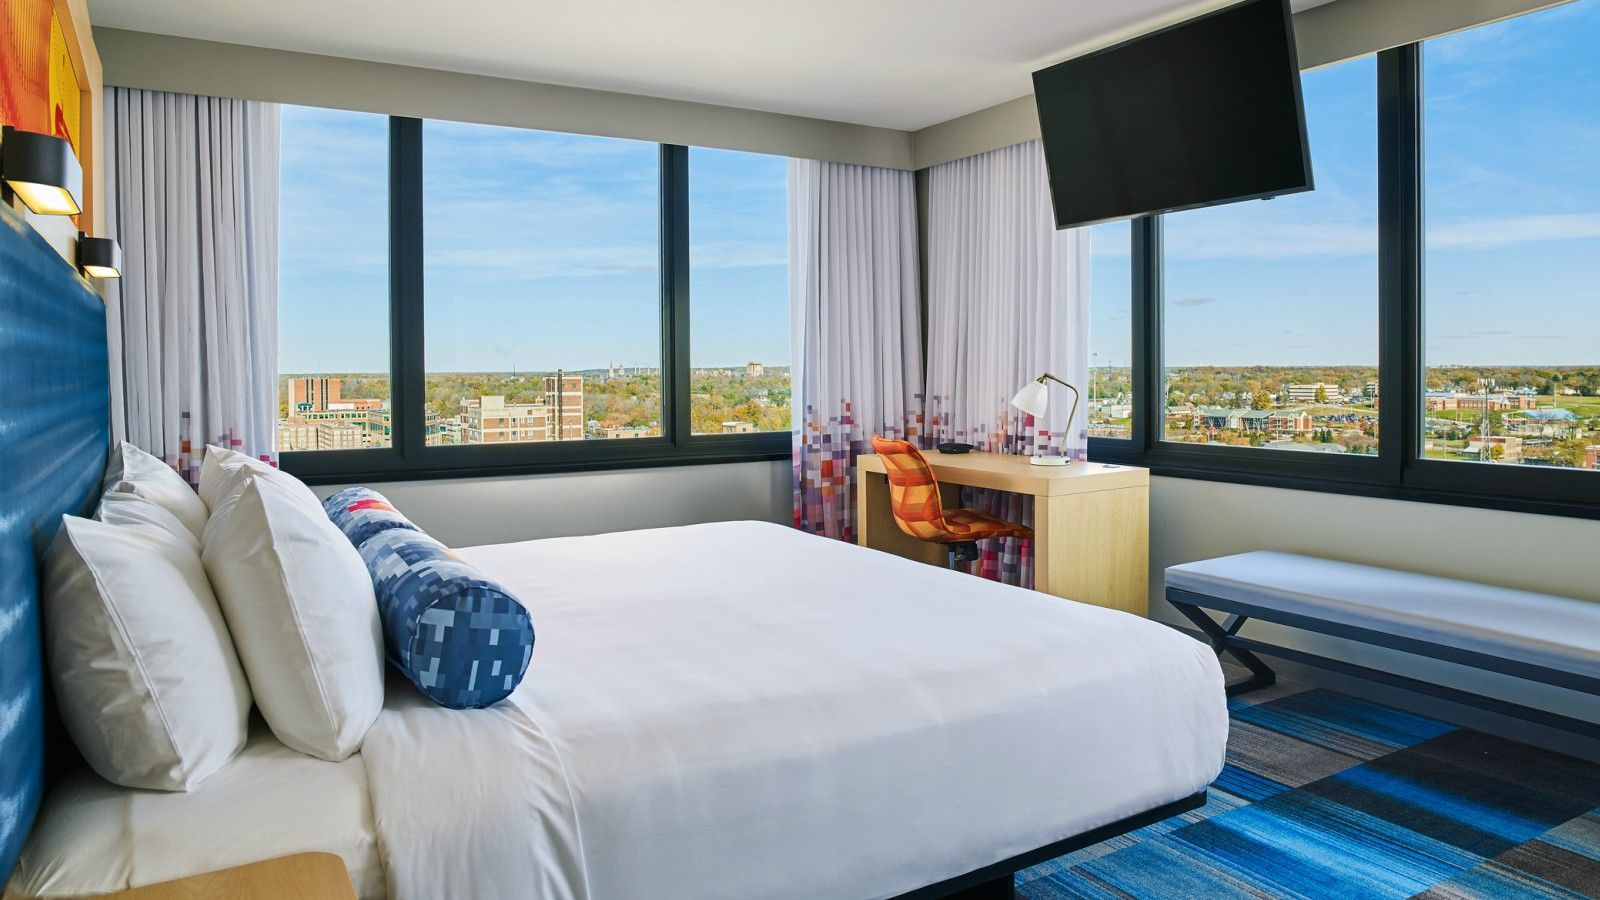 South Bend Accommodations - Aloft Corner King Room